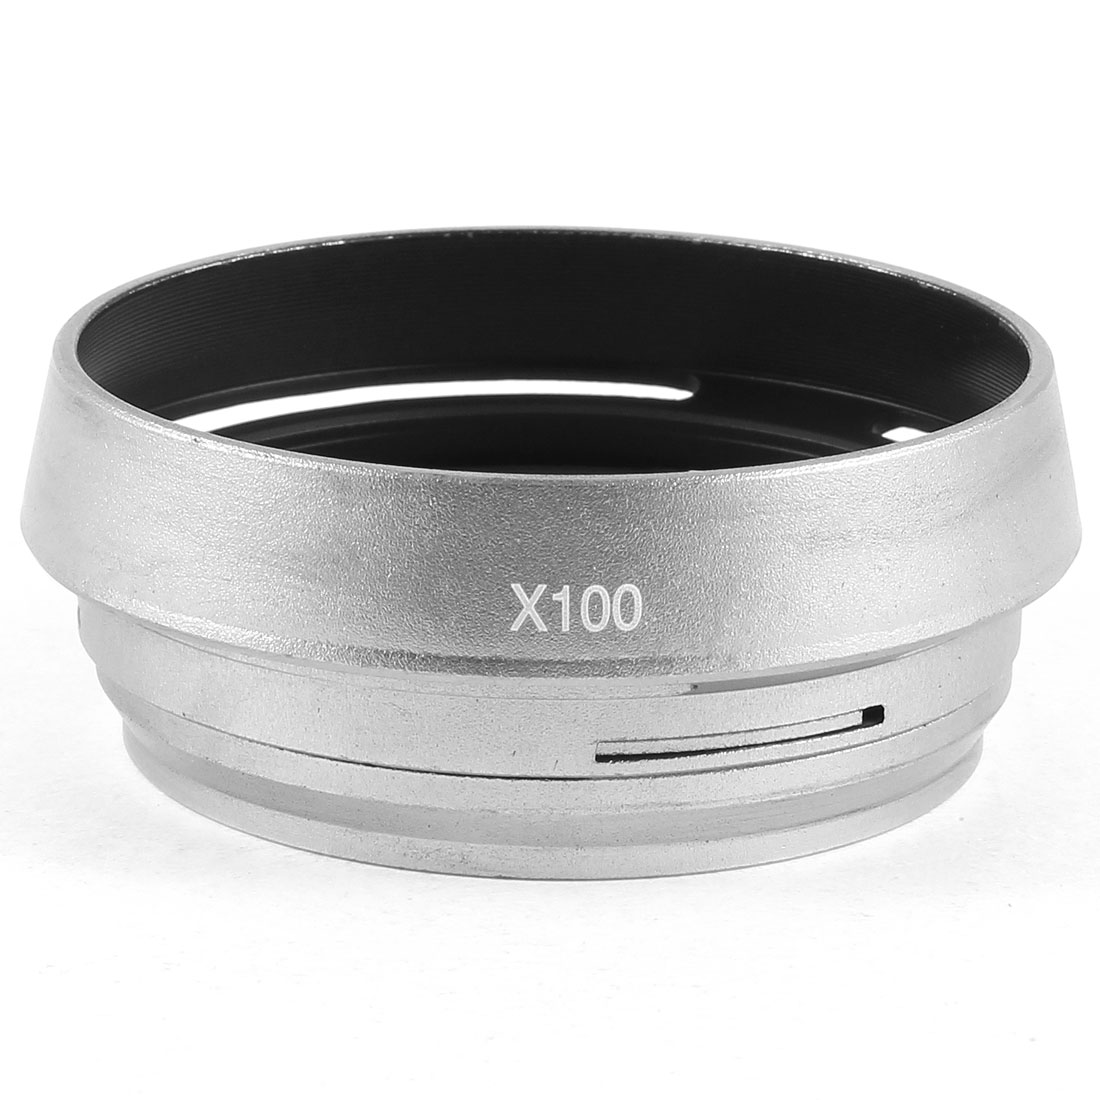 Aluminum Hollow Design 49mm Lens Hood Adapter Ring Silver Tone Gray